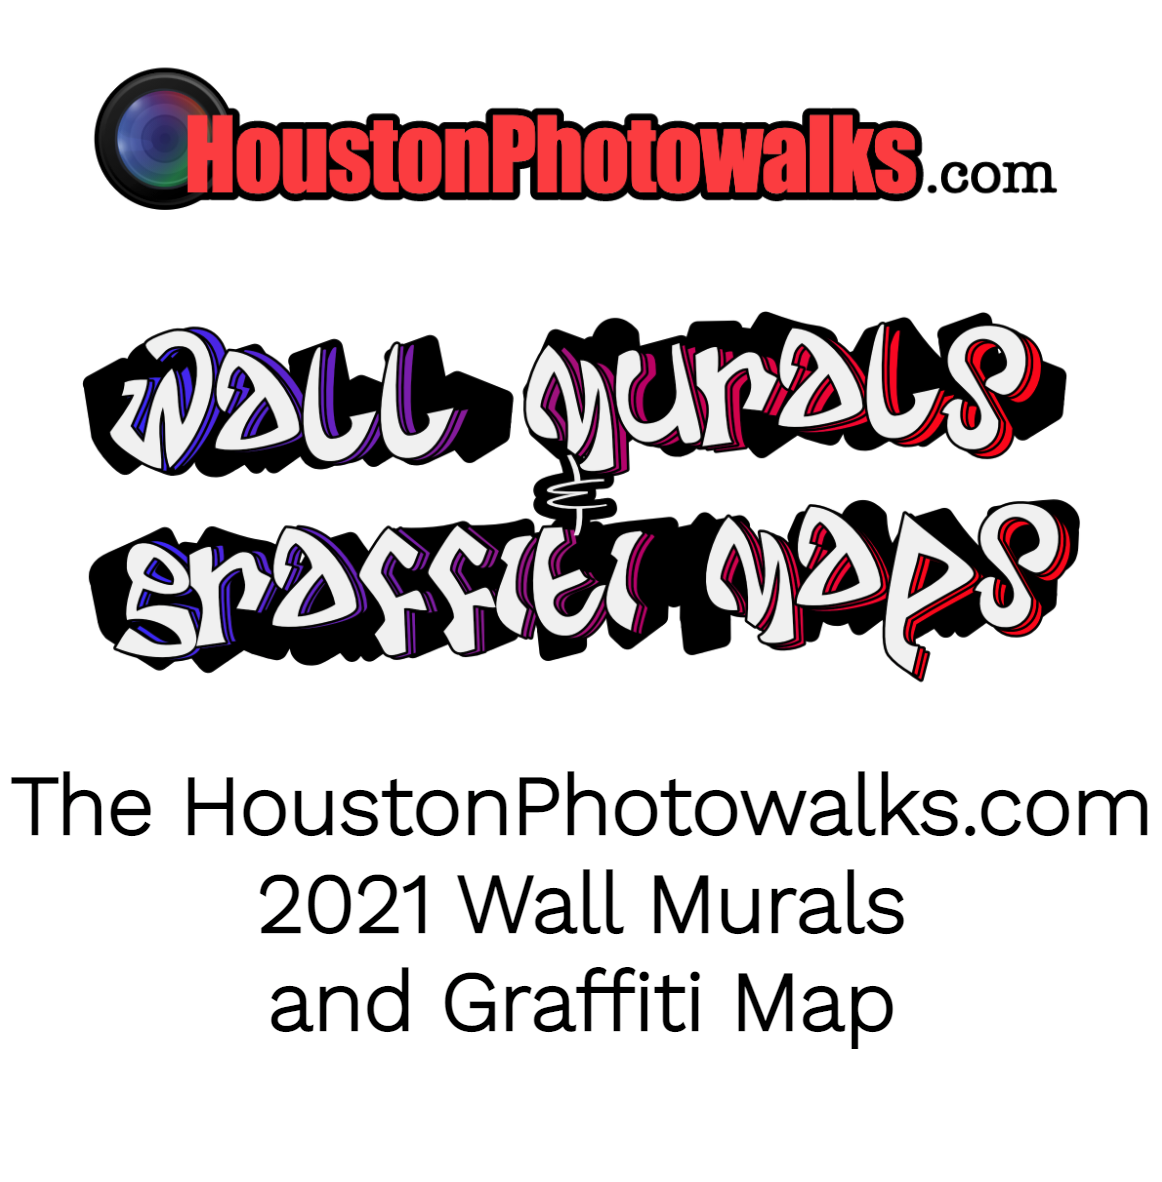 2021 Houston Transient Art and Graffiti - 200 Mapped Locations